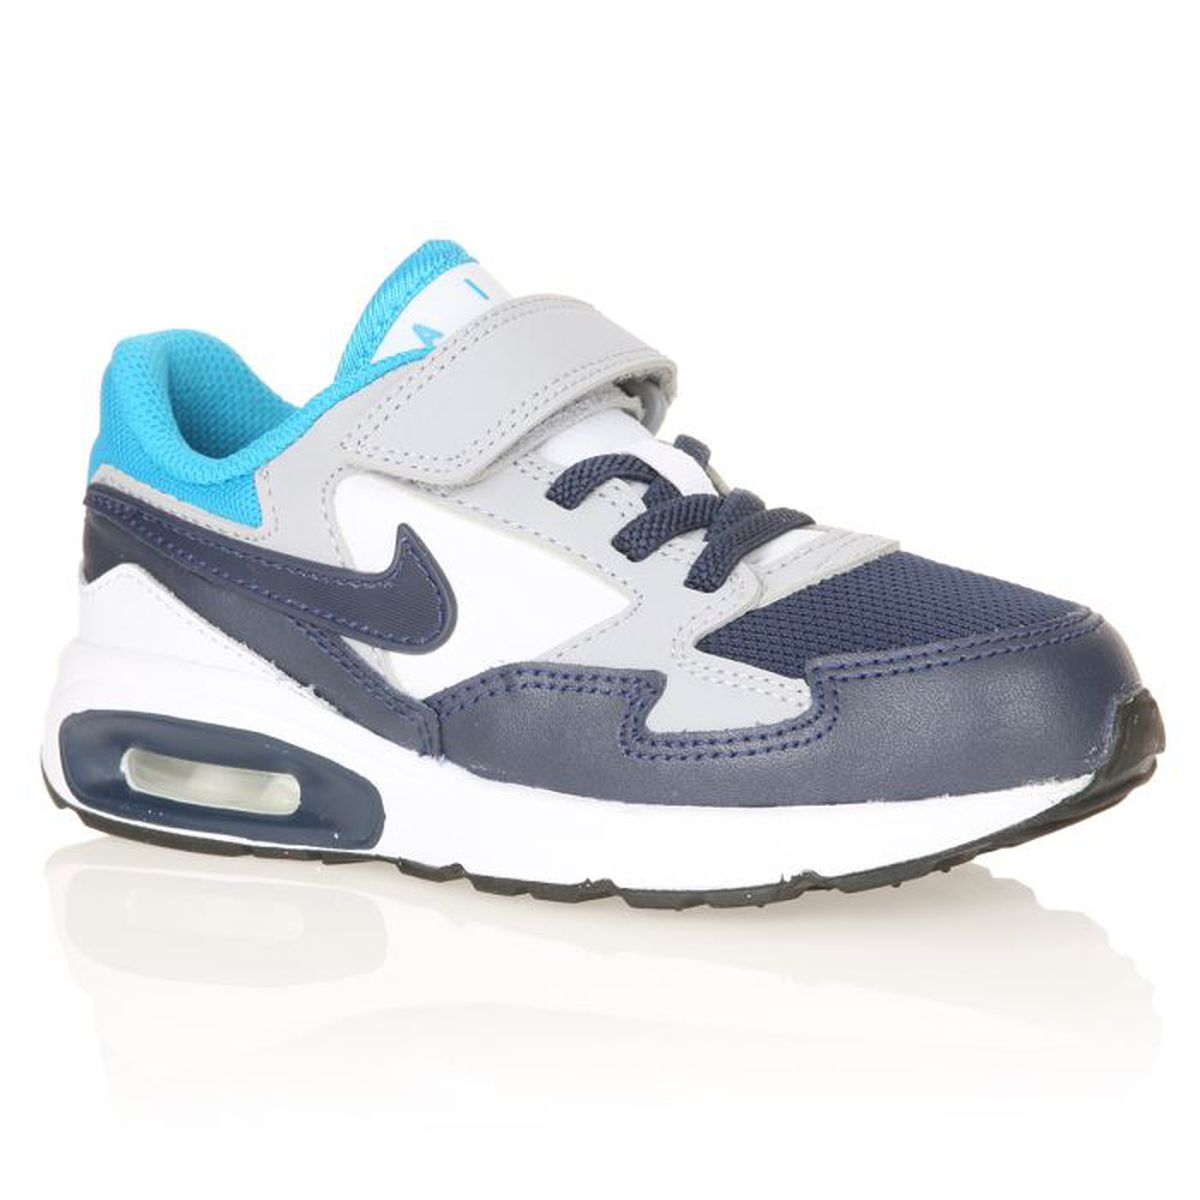 nike air max occasion nike air max chaussures sensation. Black Bedroom Furniture Sets. Home Design Ideas